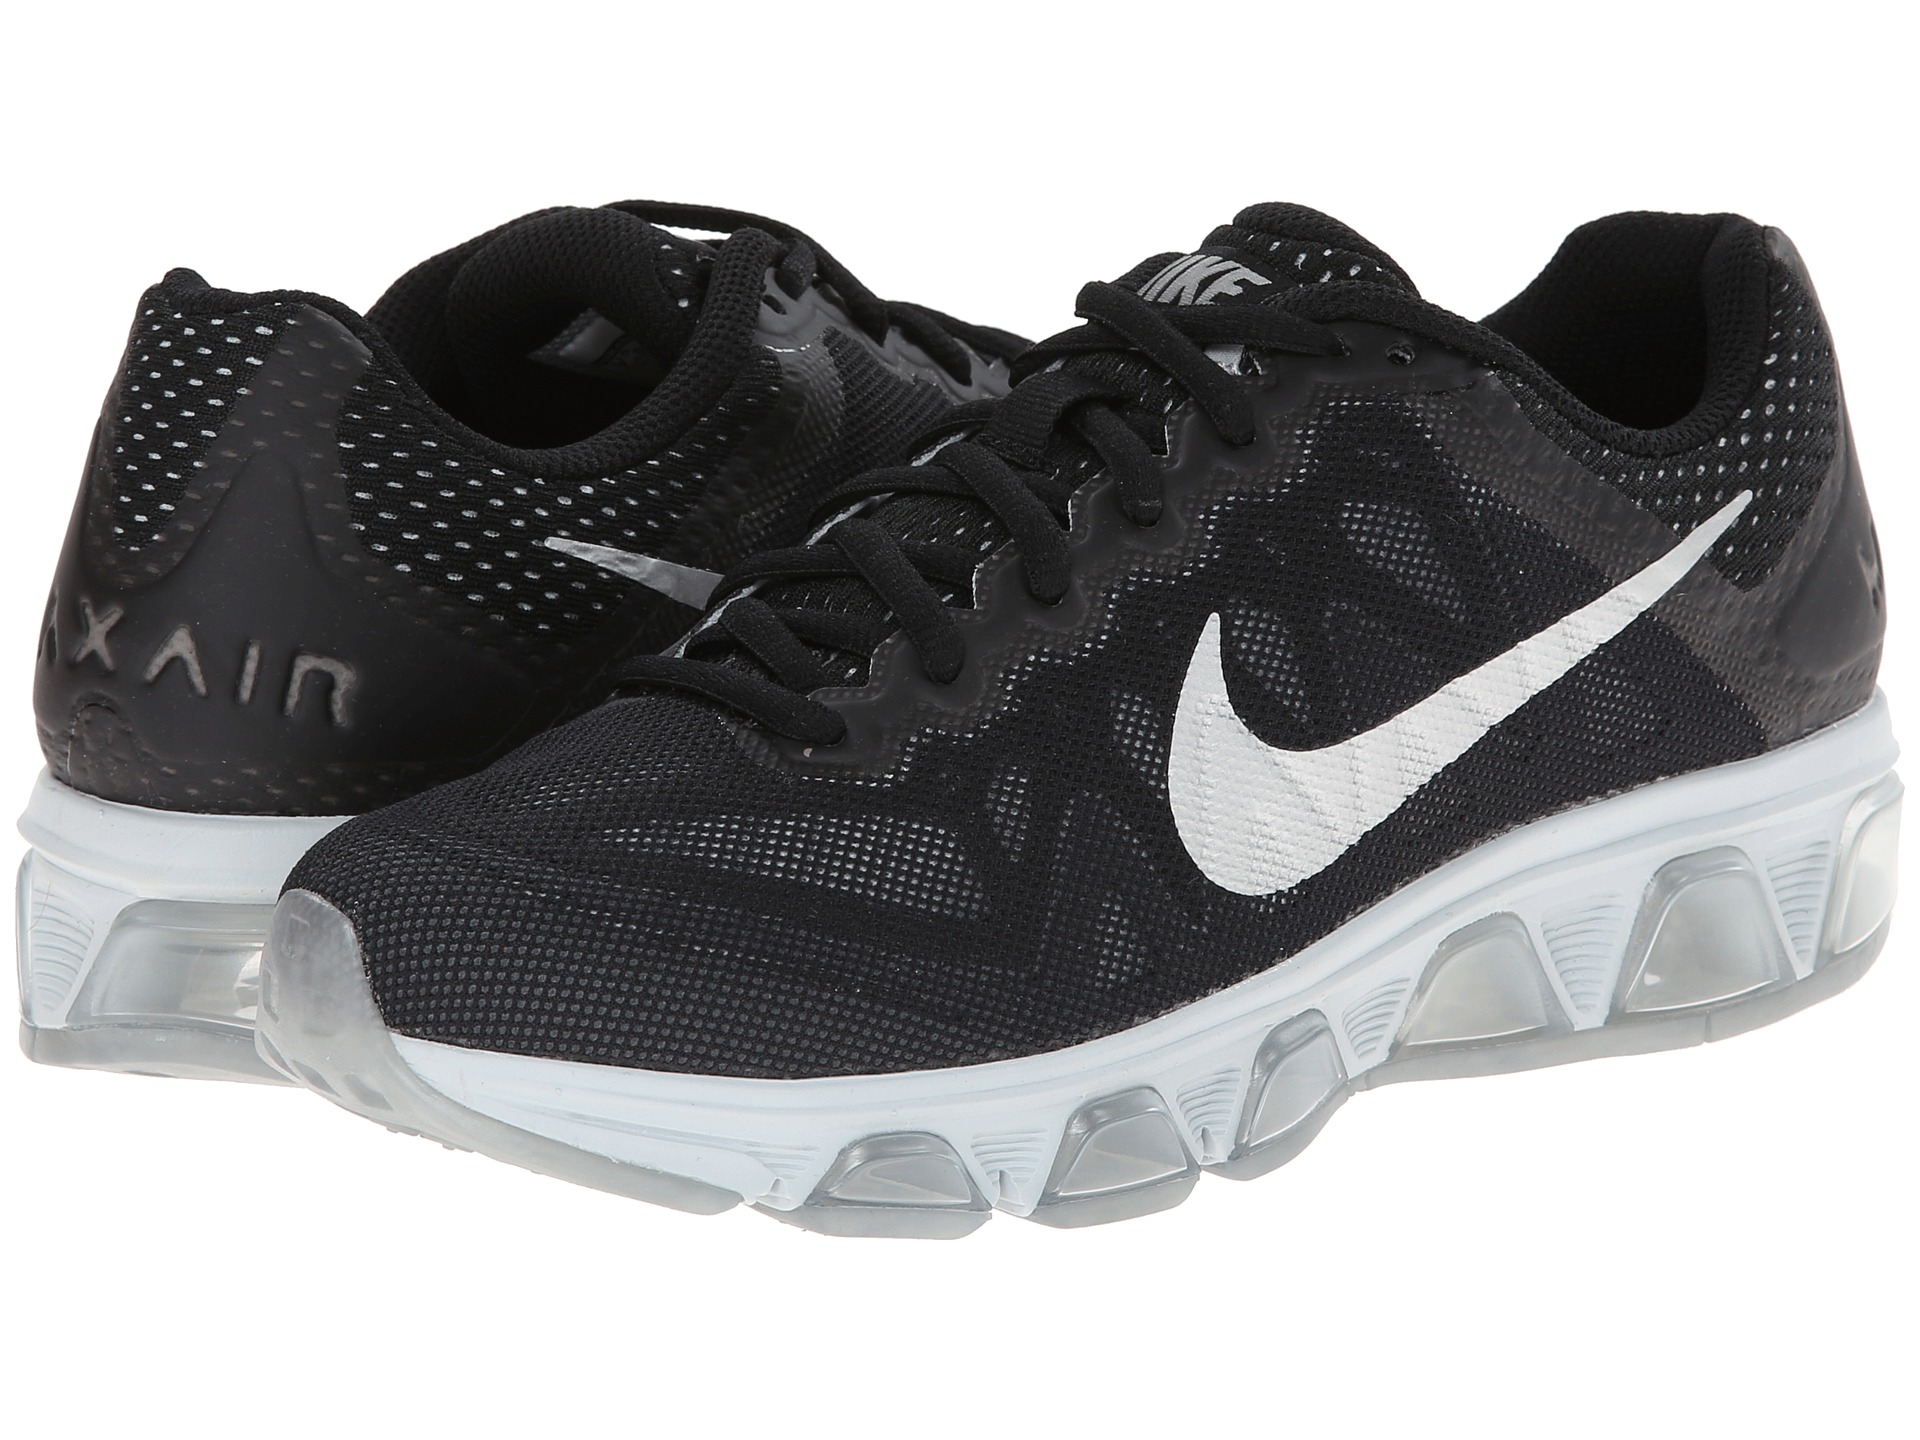 Reduced Nike Air Max Tailwind 7 Mens - Nike Air Max Tailwind 7~1